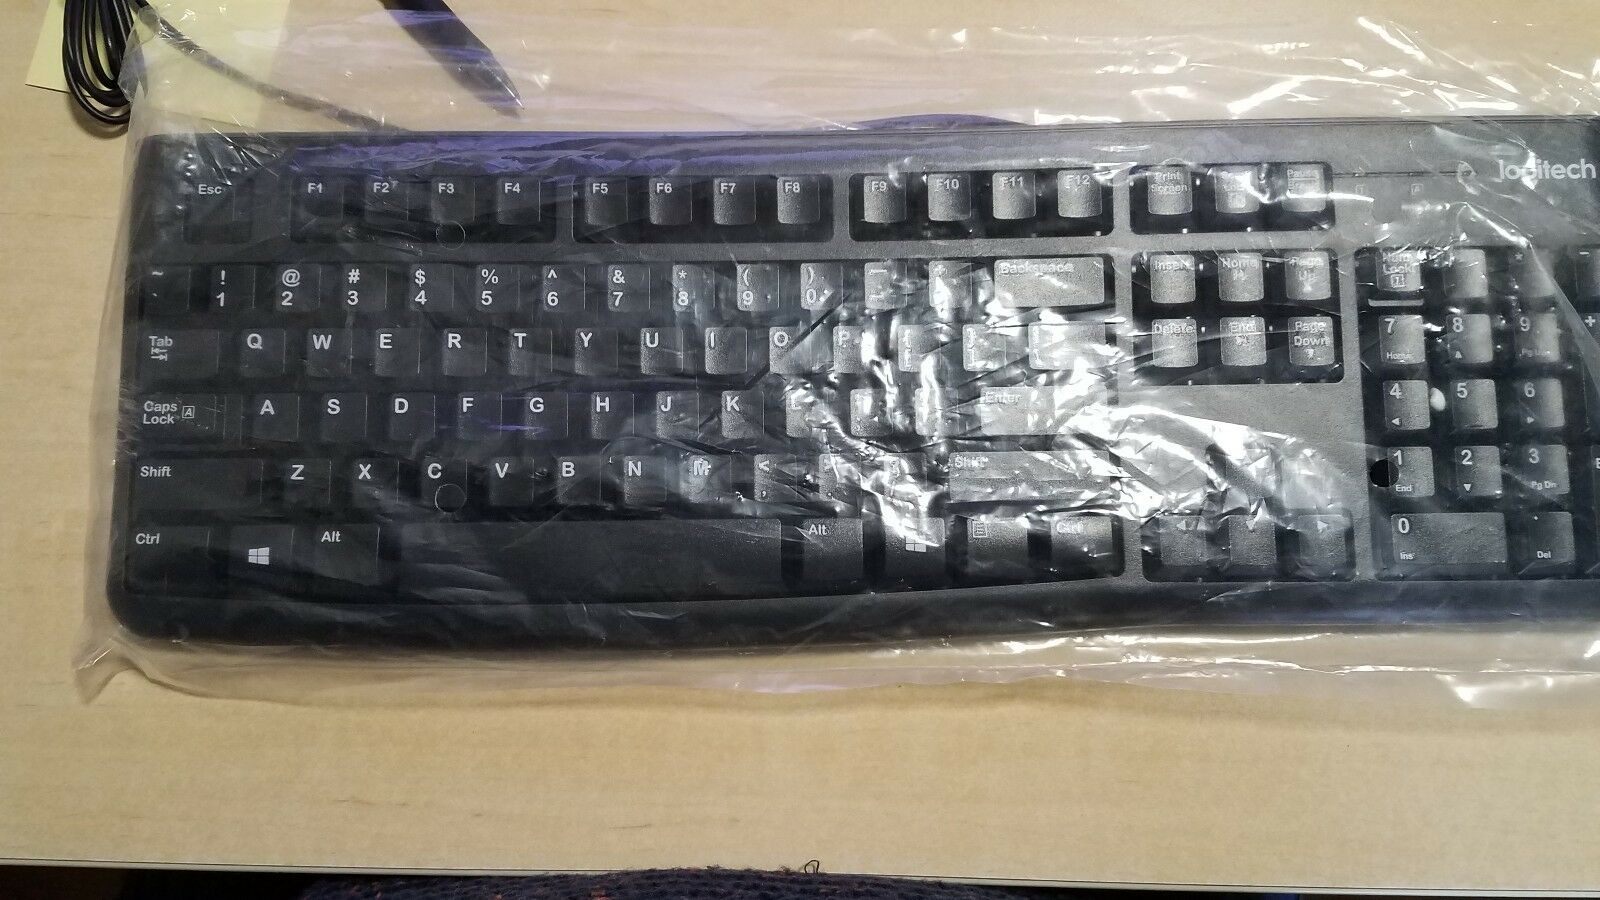 Logitech K120 Keyboard New 800 Picclick Usb 1 Of 3only 3 Available